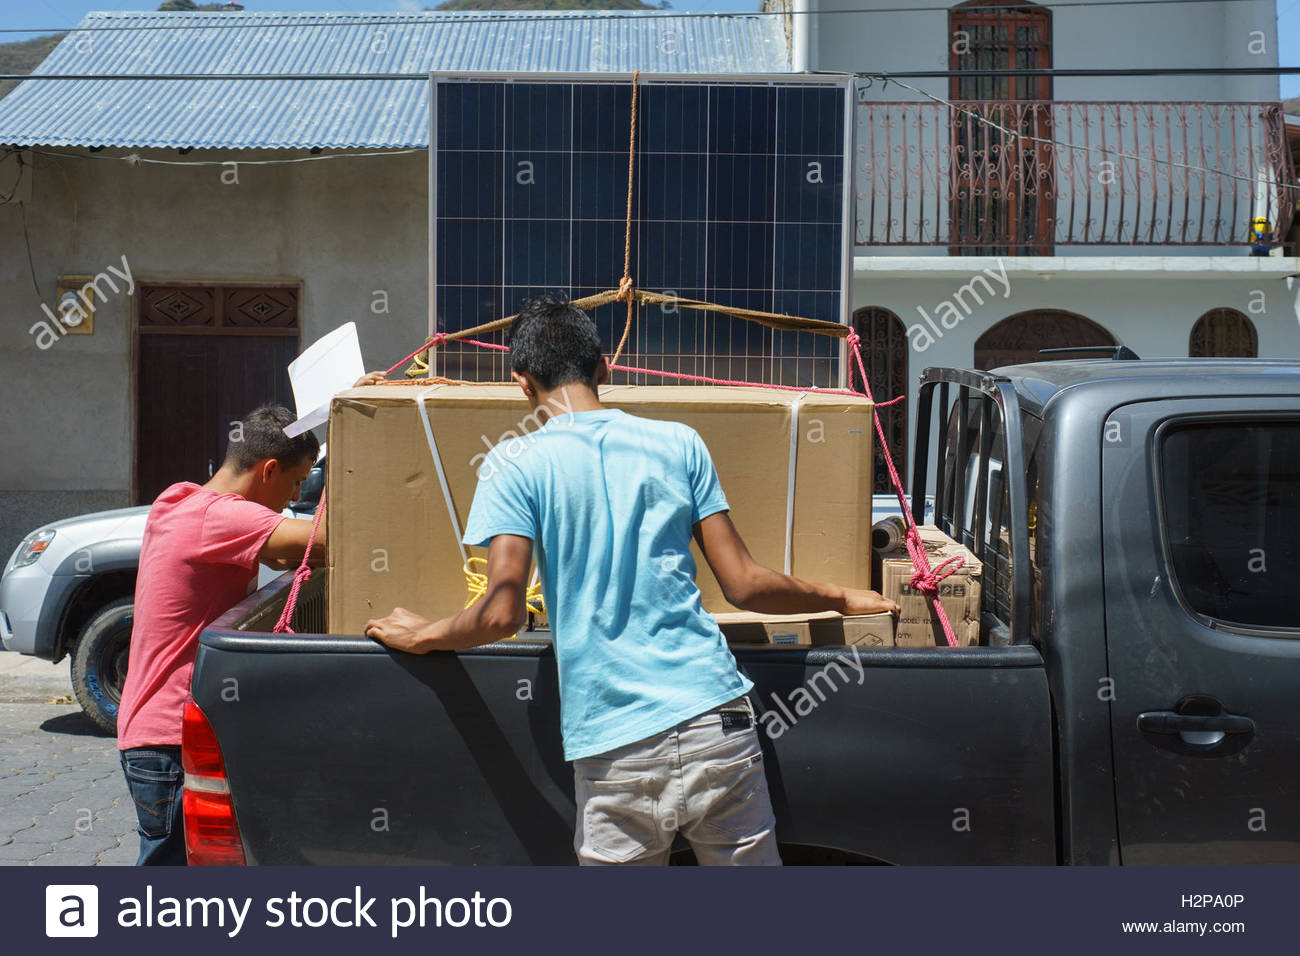 Men loading solar panels in Jinotega, Nicaragua Stock Photo